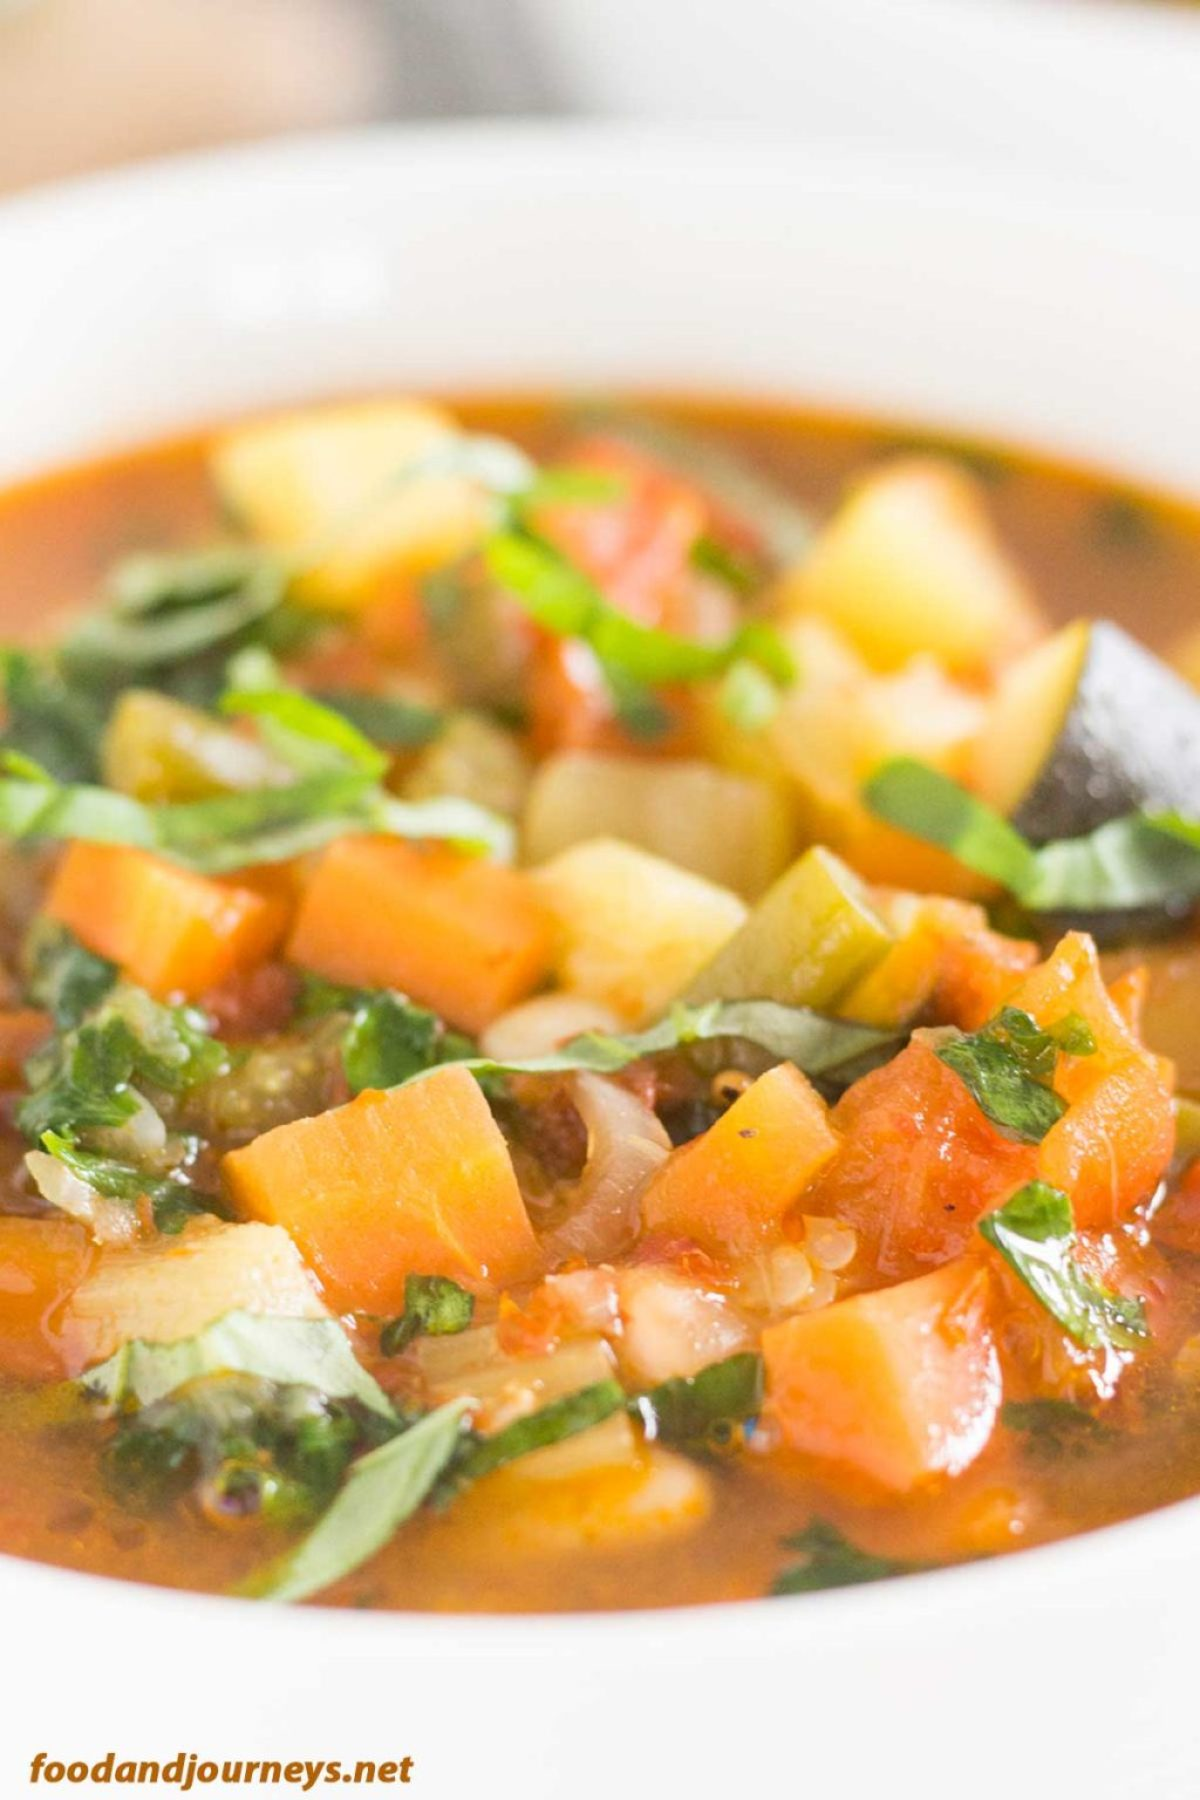 Summer Minestrone pic1|foodandjourneys.net